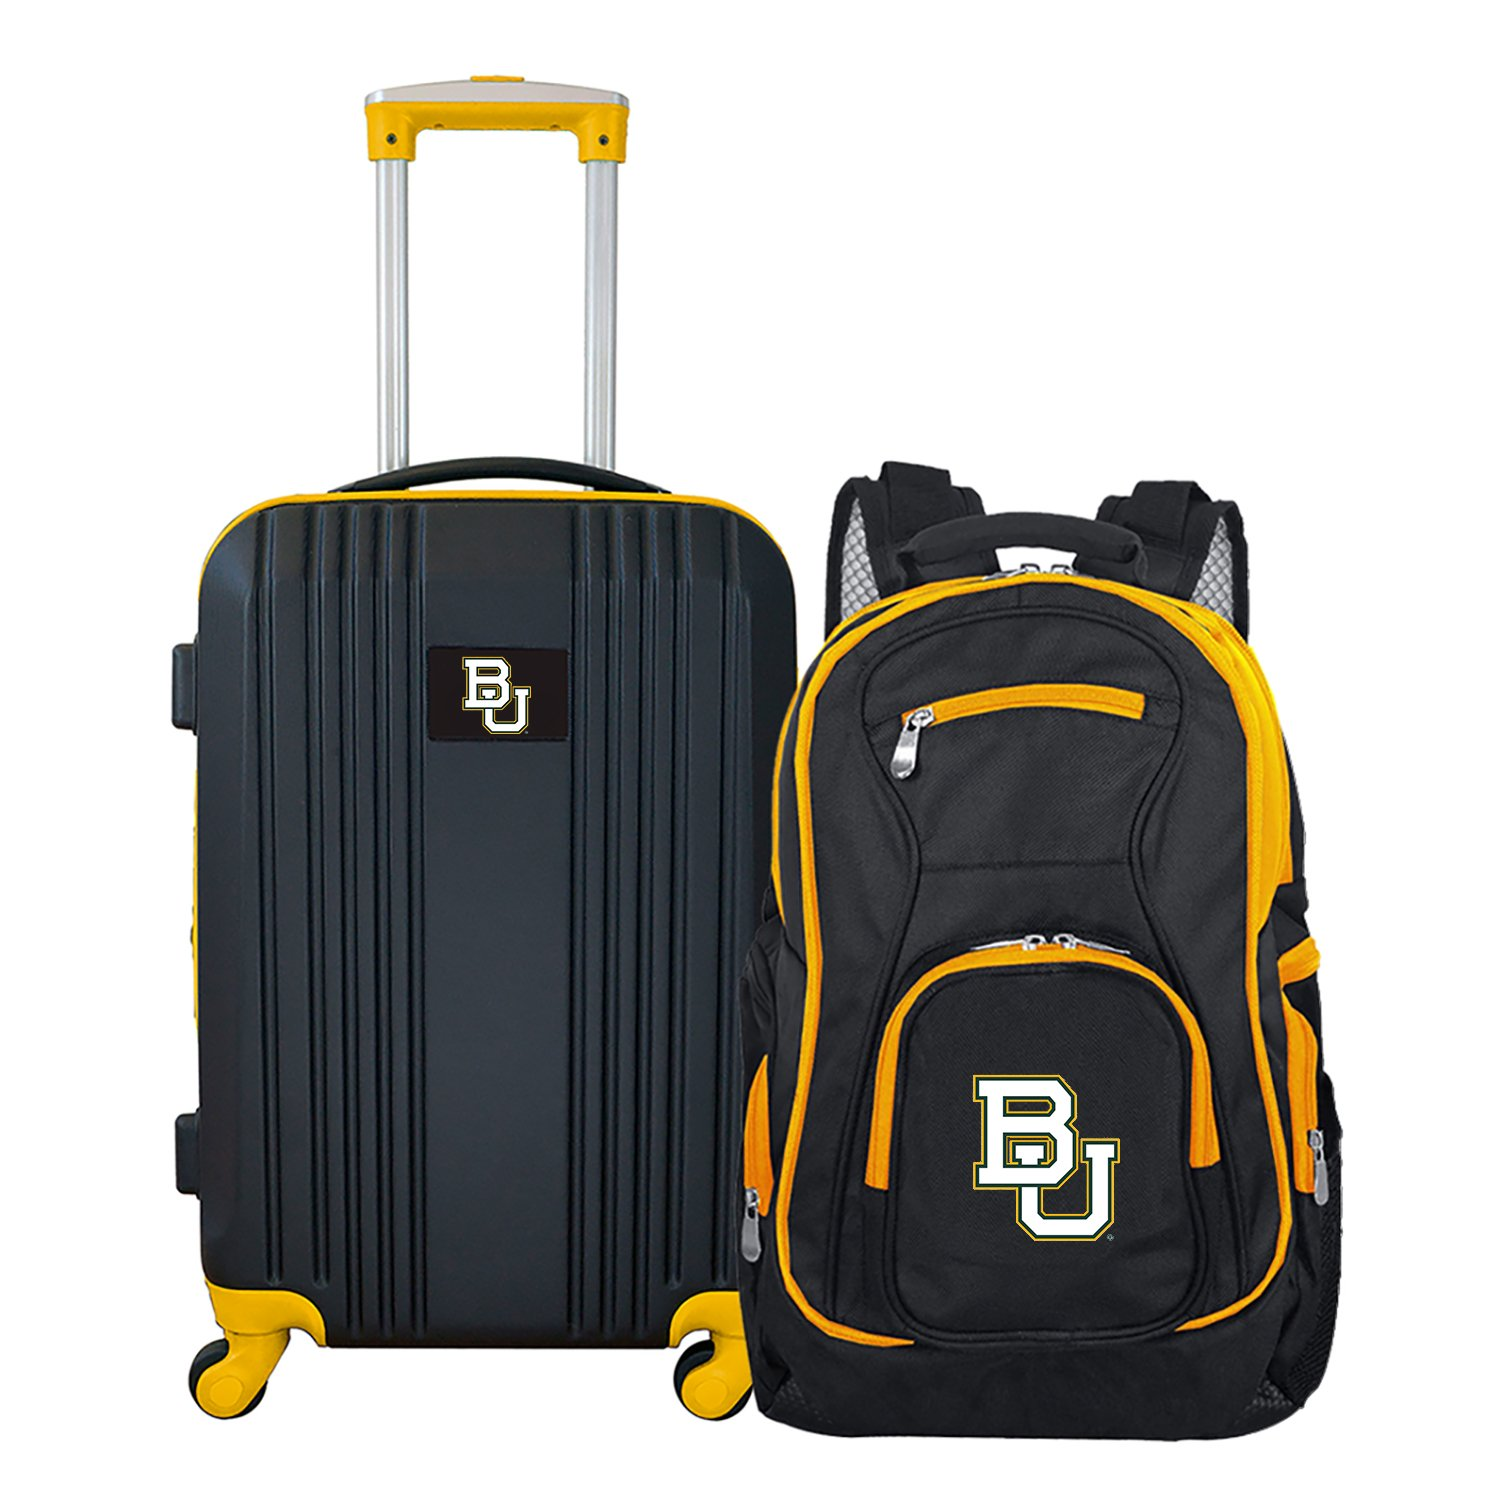 NCAA Baylor Bears 2-Piece Luggage Set